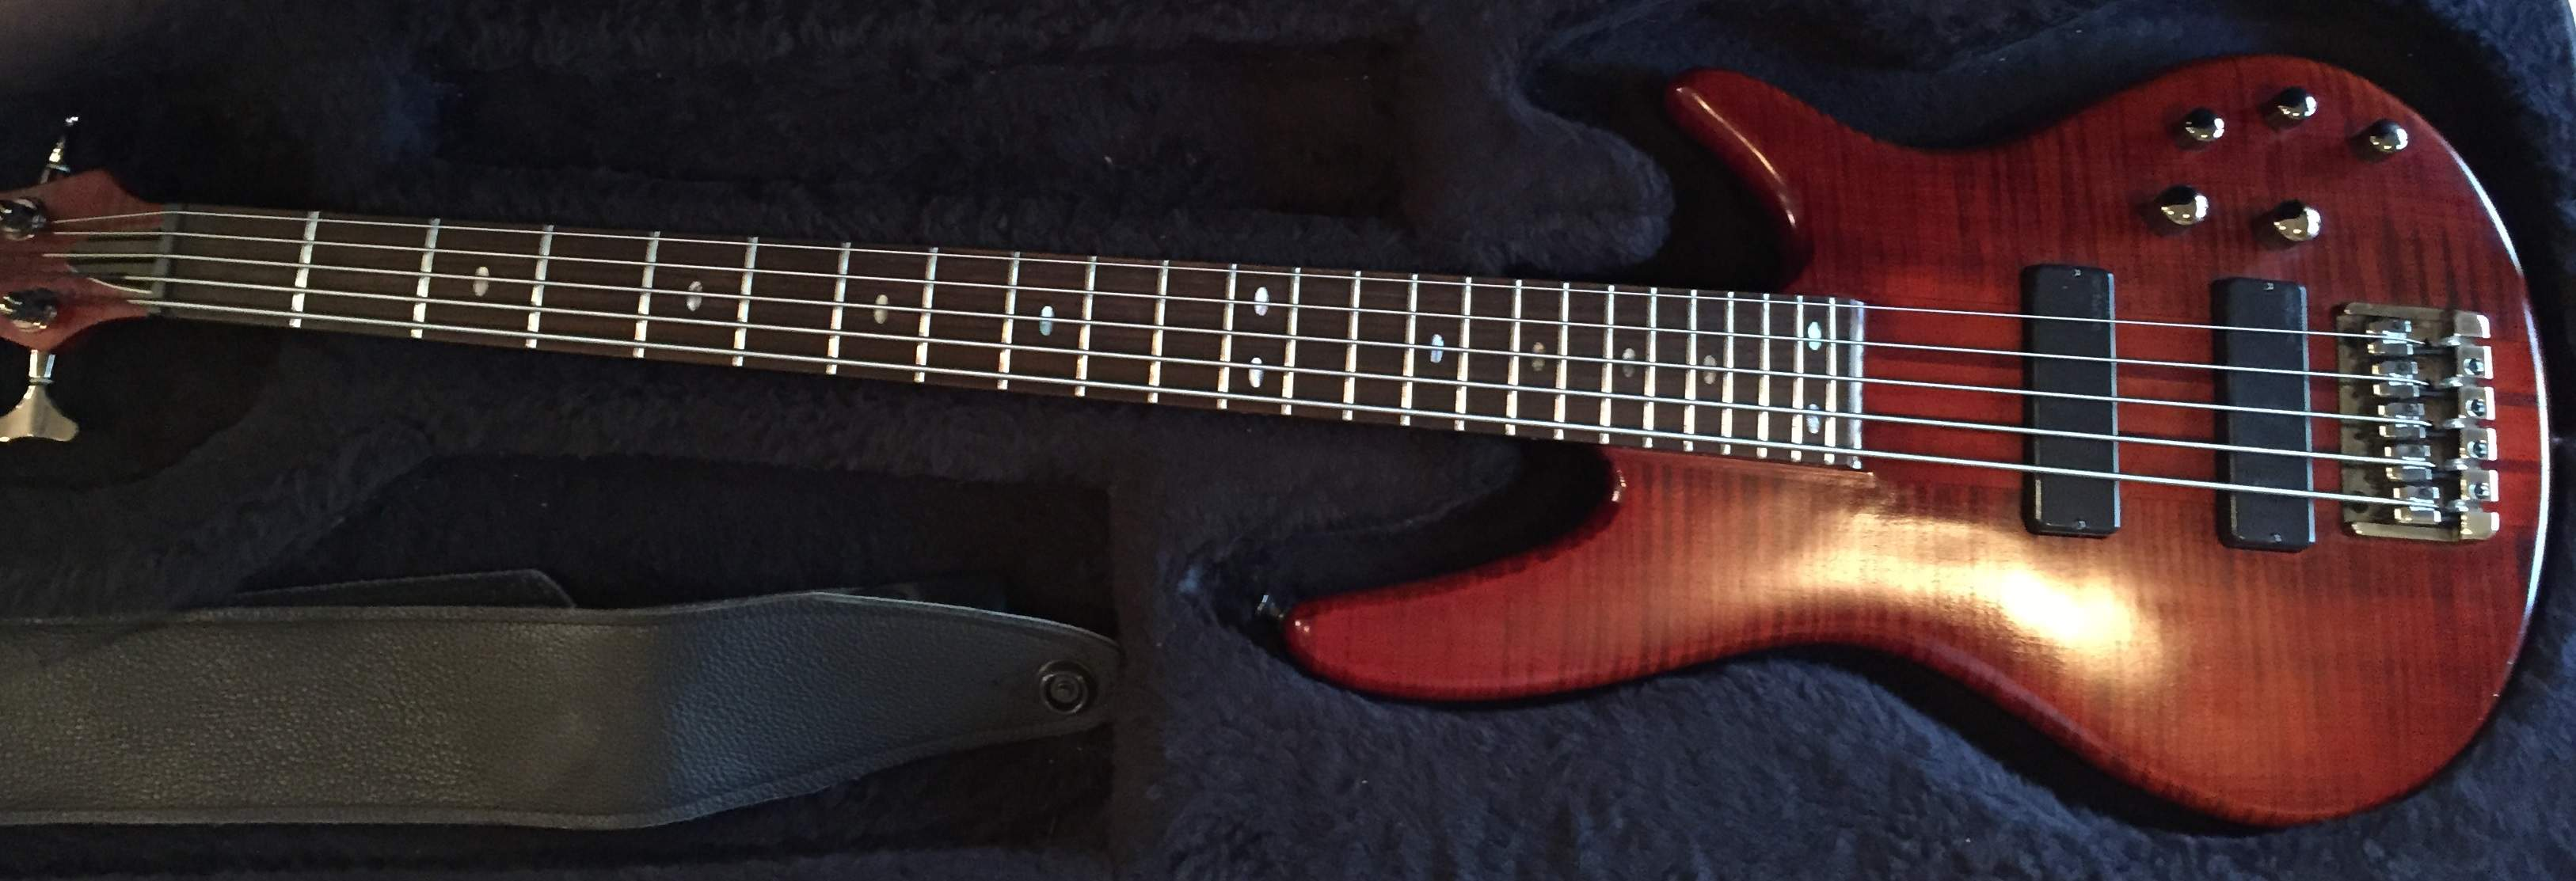 Ibanez in Case with Leather Strap.JPG